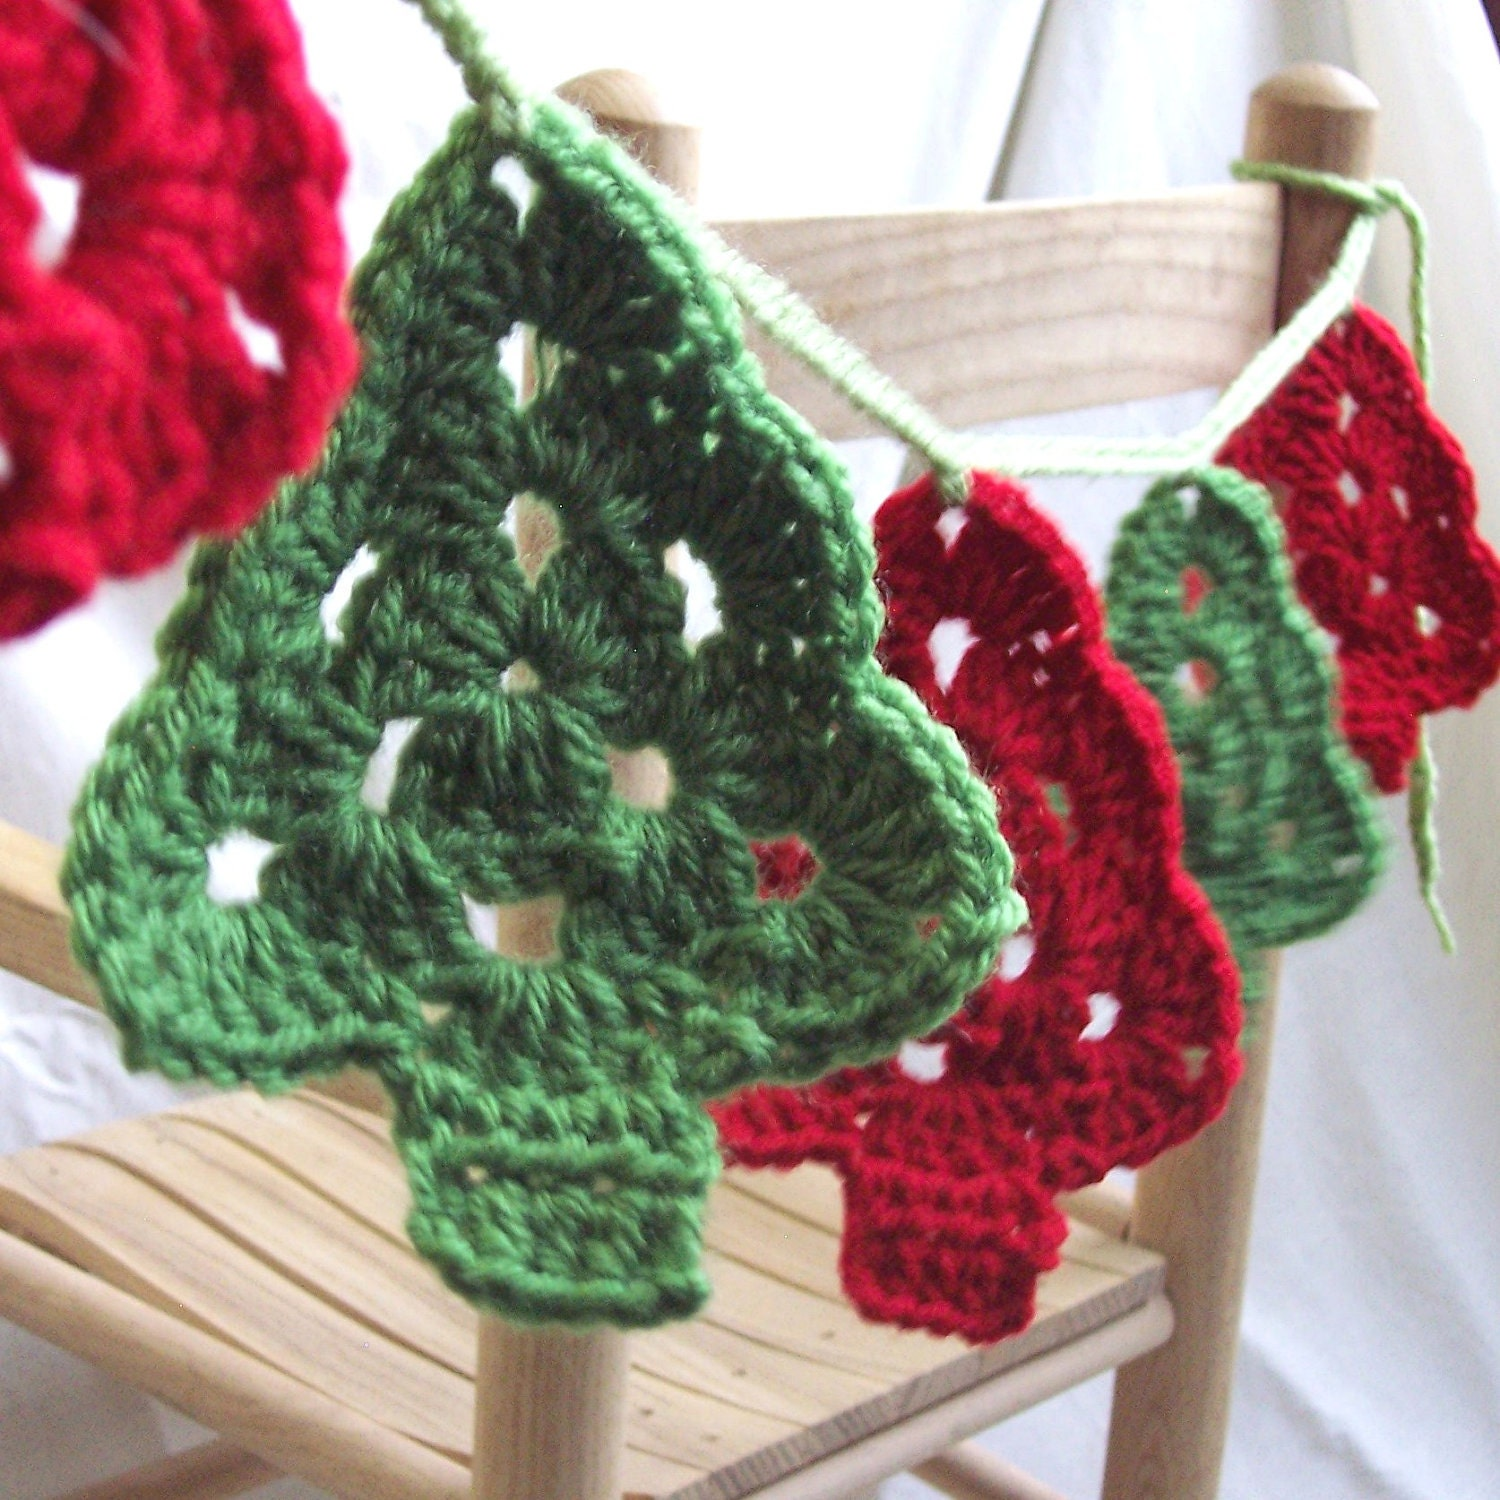 Crochet Pattern For Xmas Tree : Christmas Trees Crochet Garland Granny Tree by ...